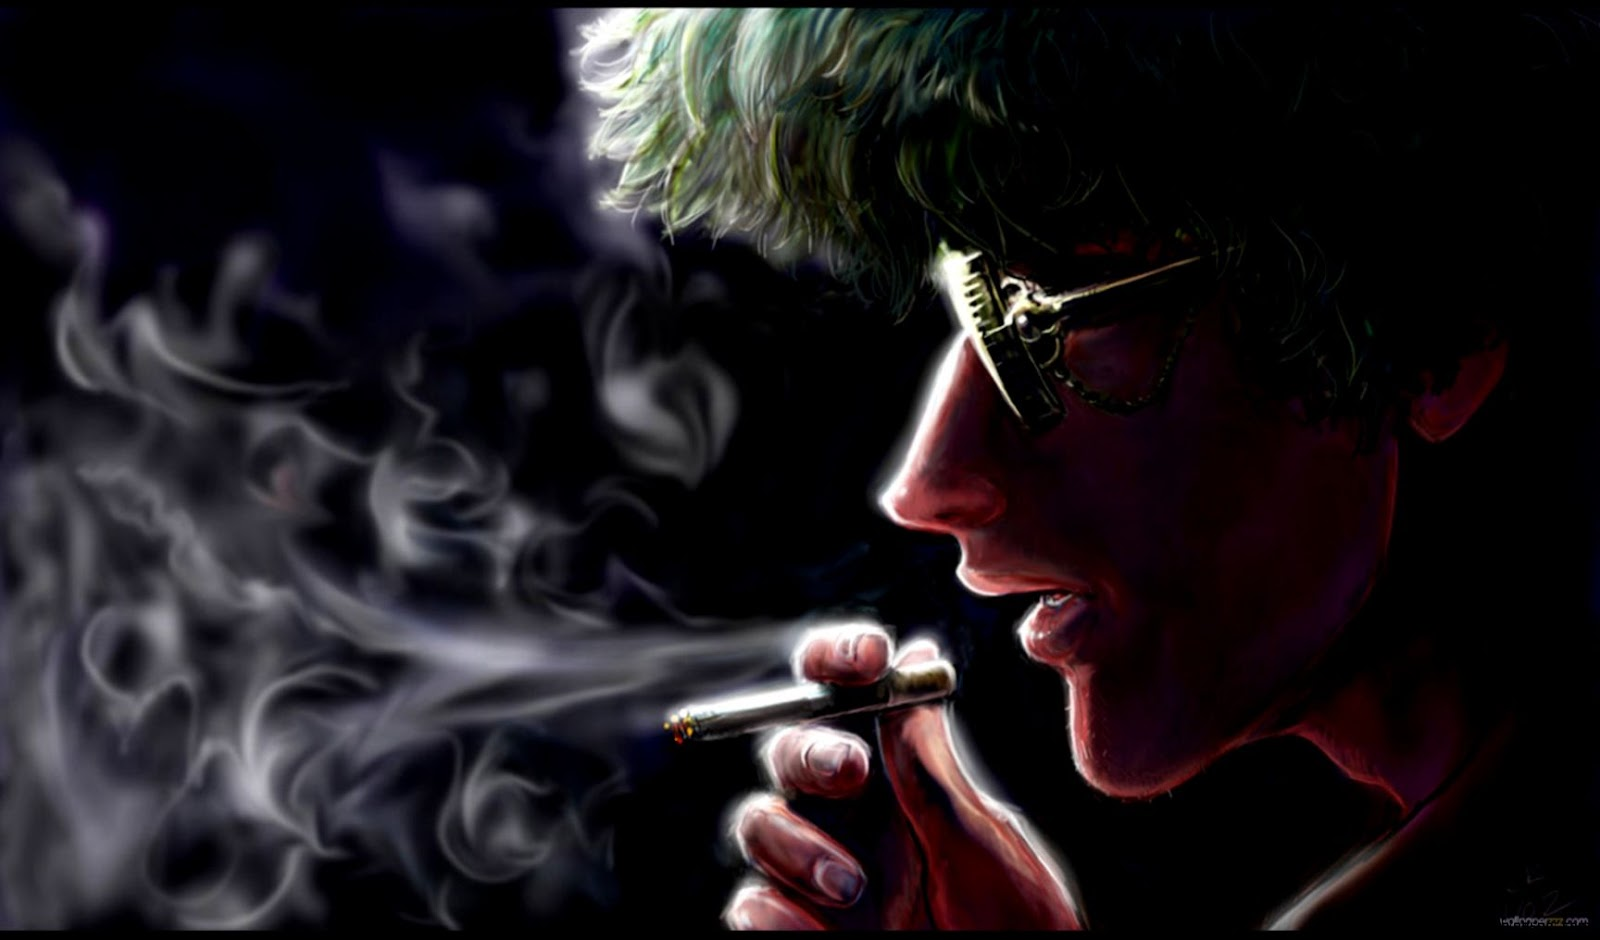 And Smoking Wallpaper Hd Wallpapers Quality